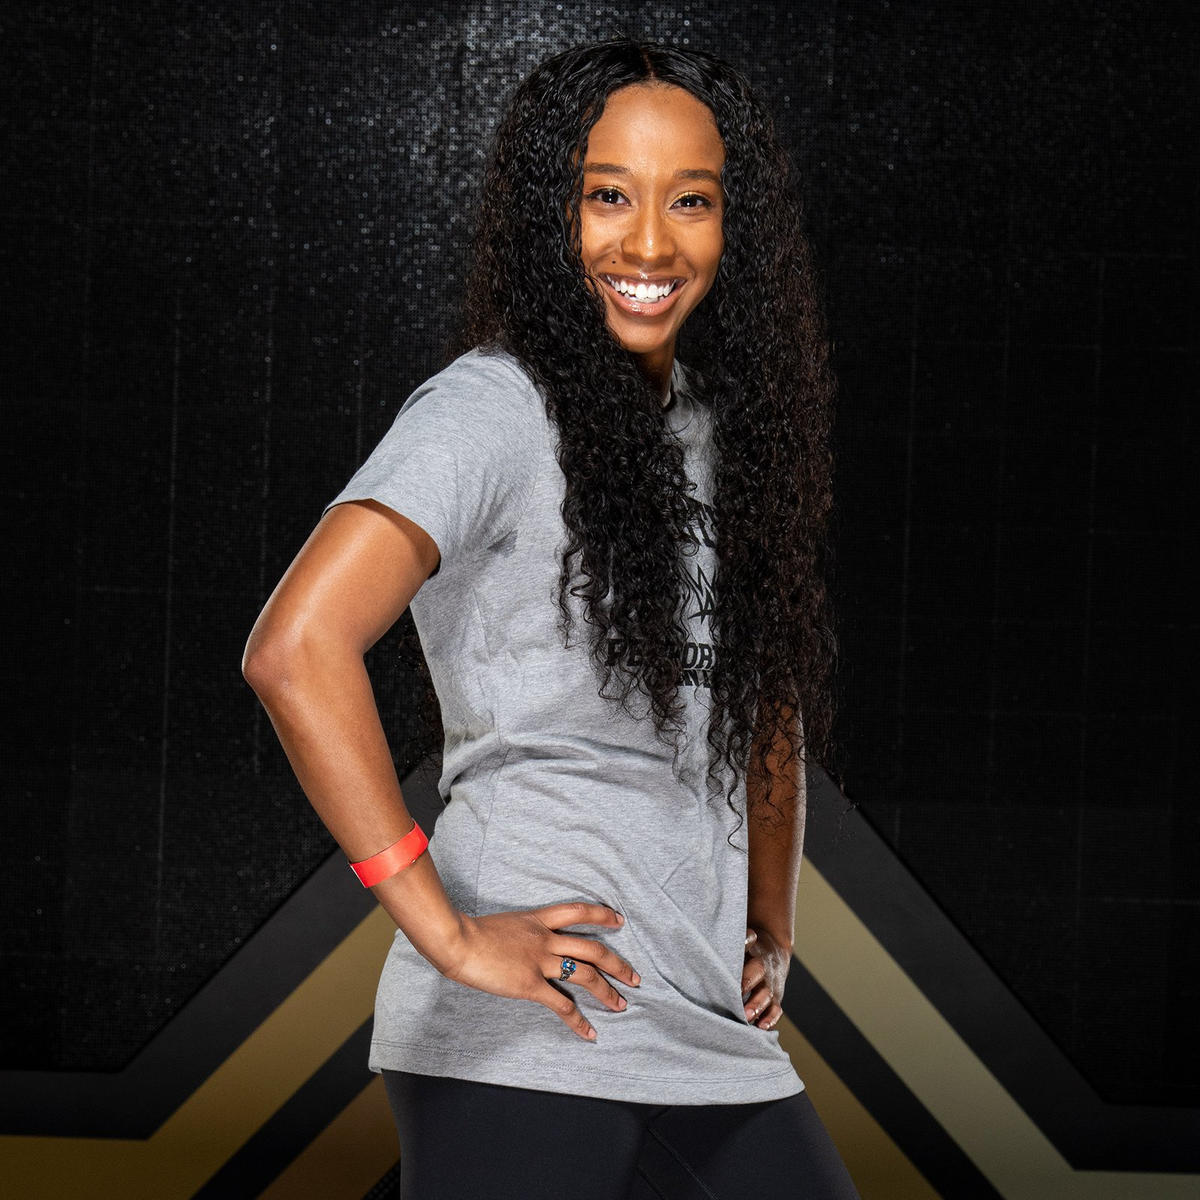 Angela Arnold trained for the squared circle under WWE Hall of Famer Booker T.